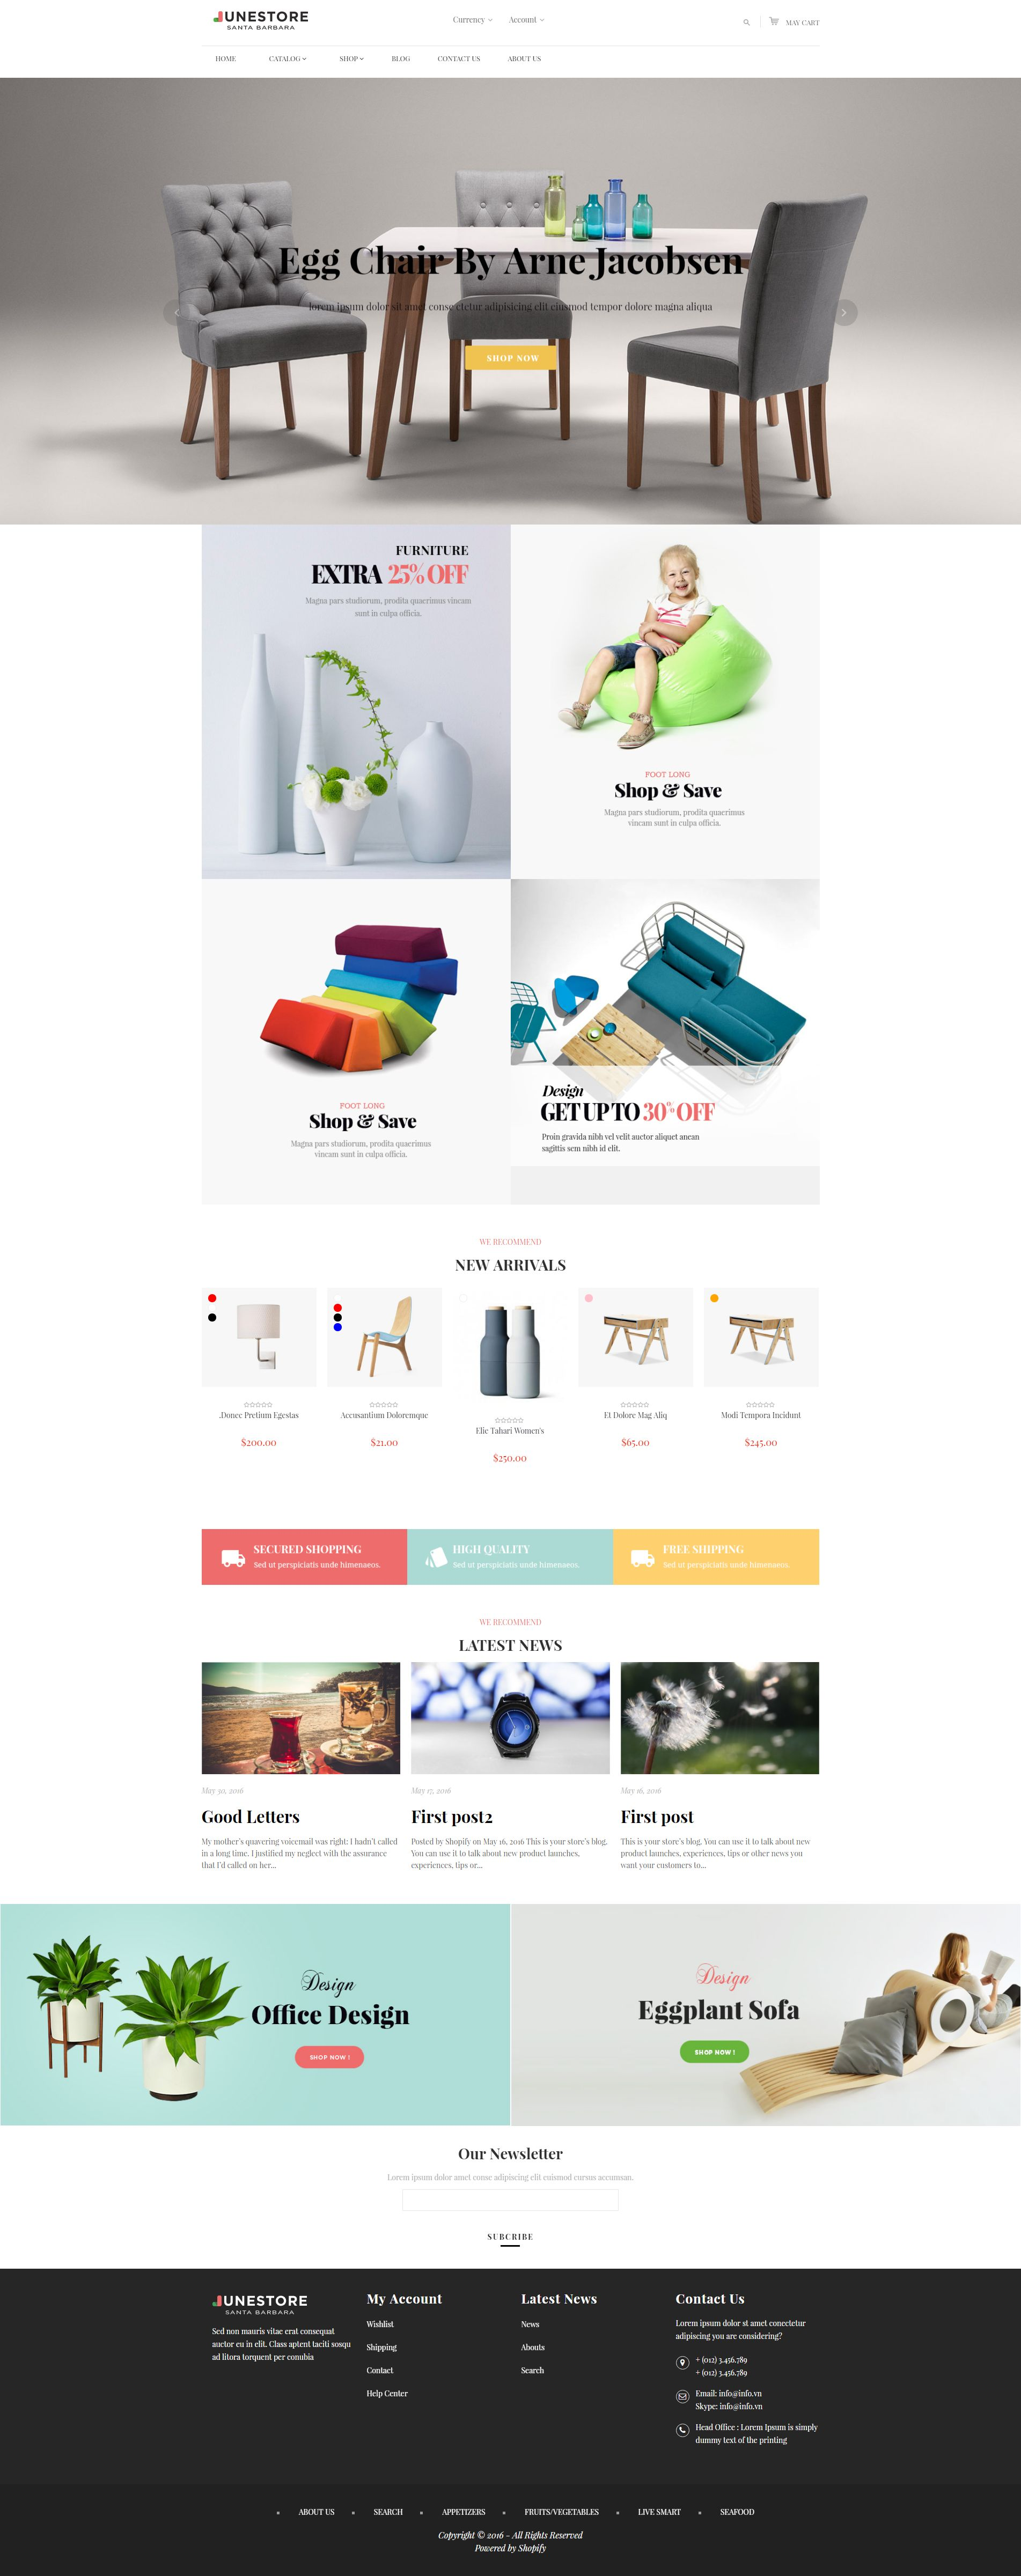 Junestore - Shopify Theme Screenshot 1